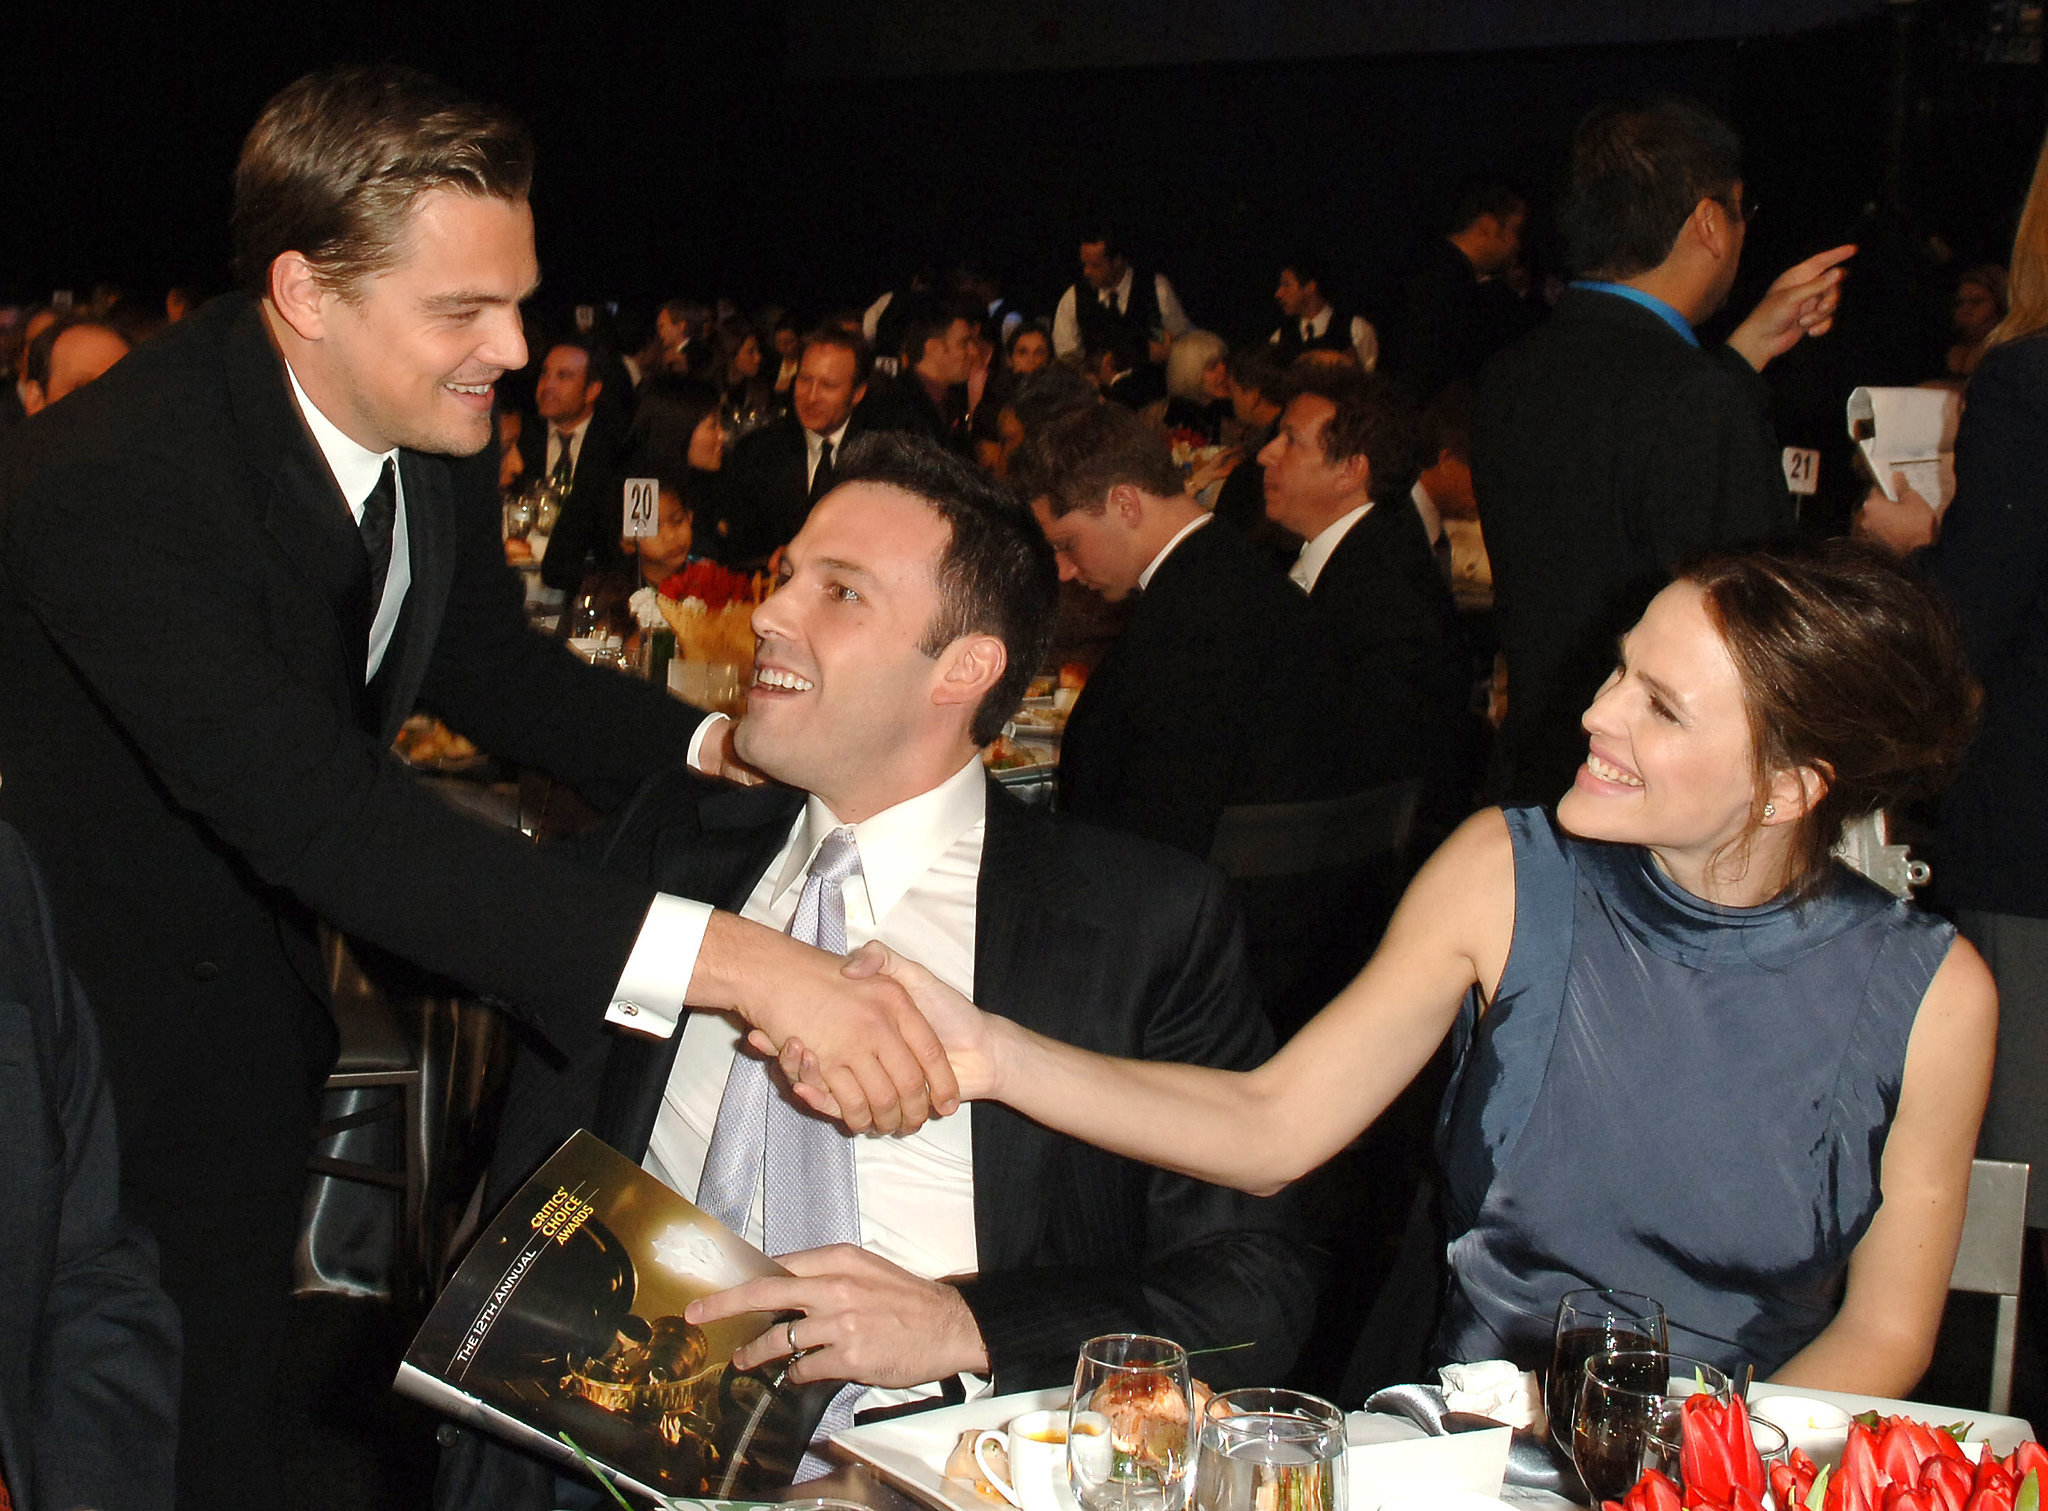 When Leonardo DiCaprio, Ben Affleck, and Jennifer Garner were just conversing in 2007 like they were normal humans and it wasn't a big deal.